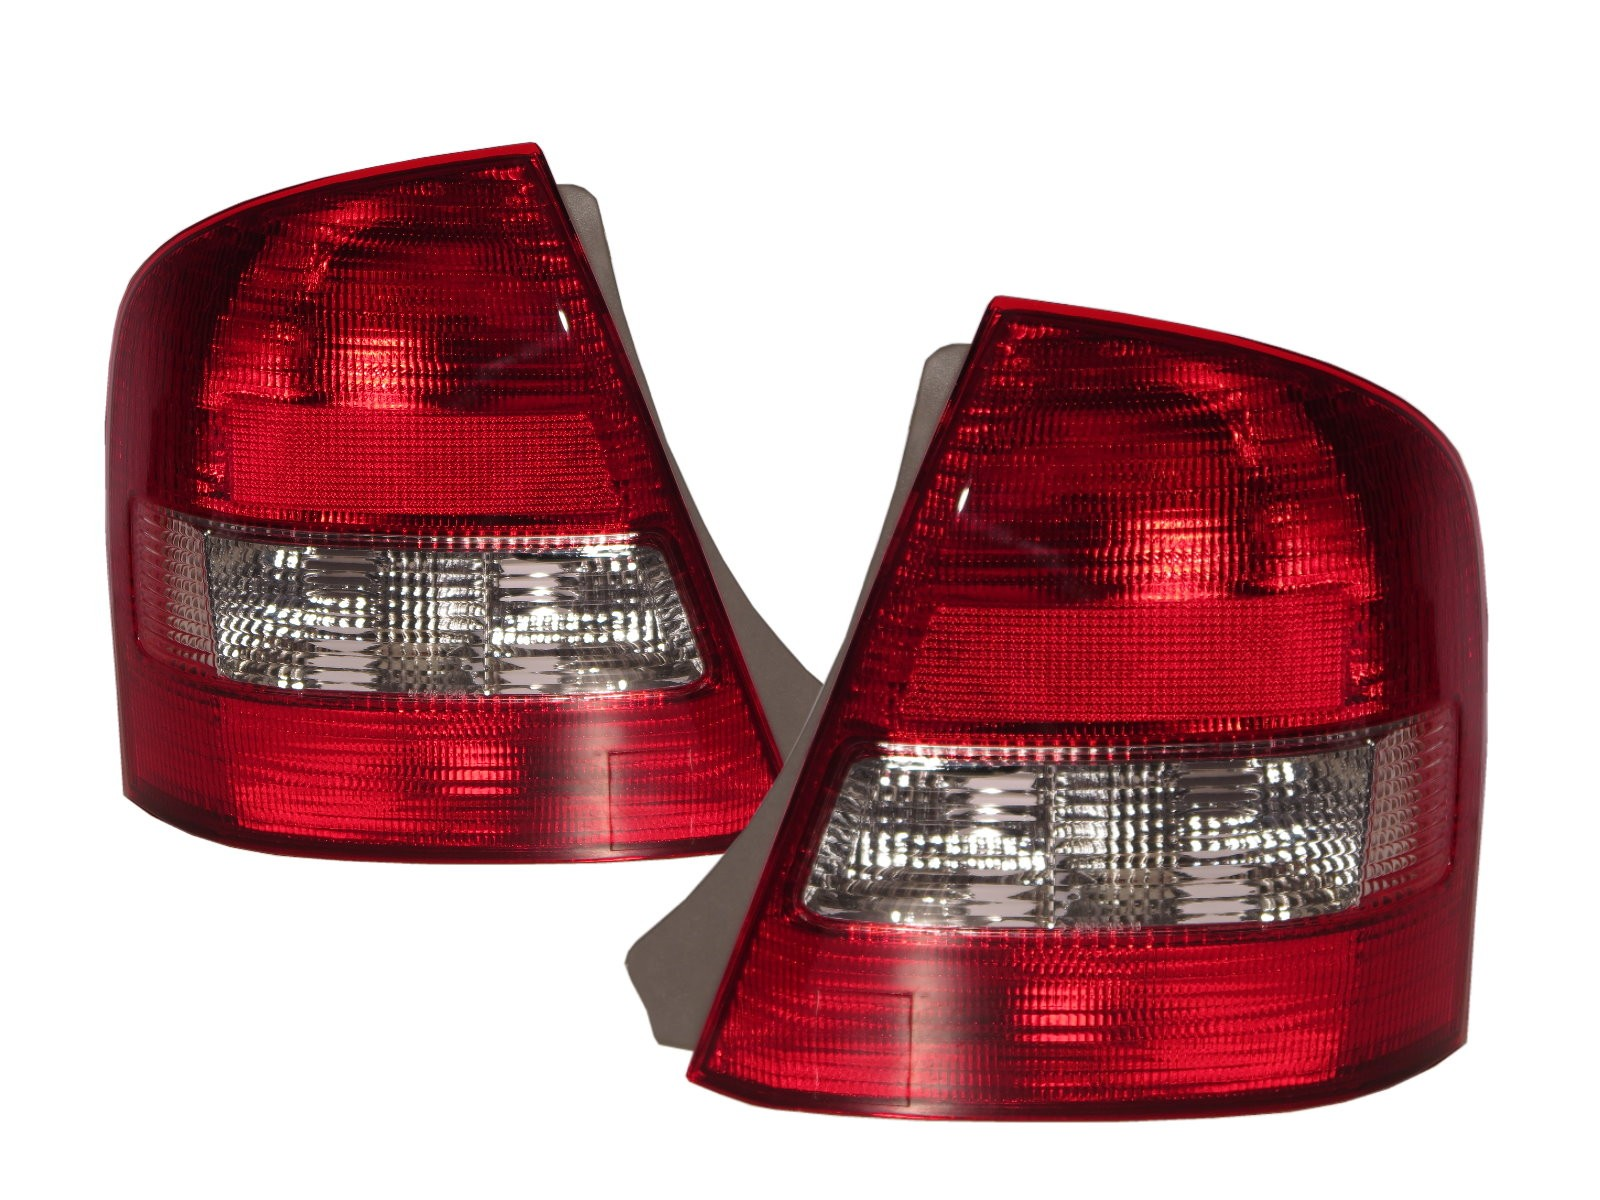 CrazyTheGod Protege BJ Eighth generation 1998-2004 Sedan 4D Clear Tail Rear Light Red/White V4 for MAZDA